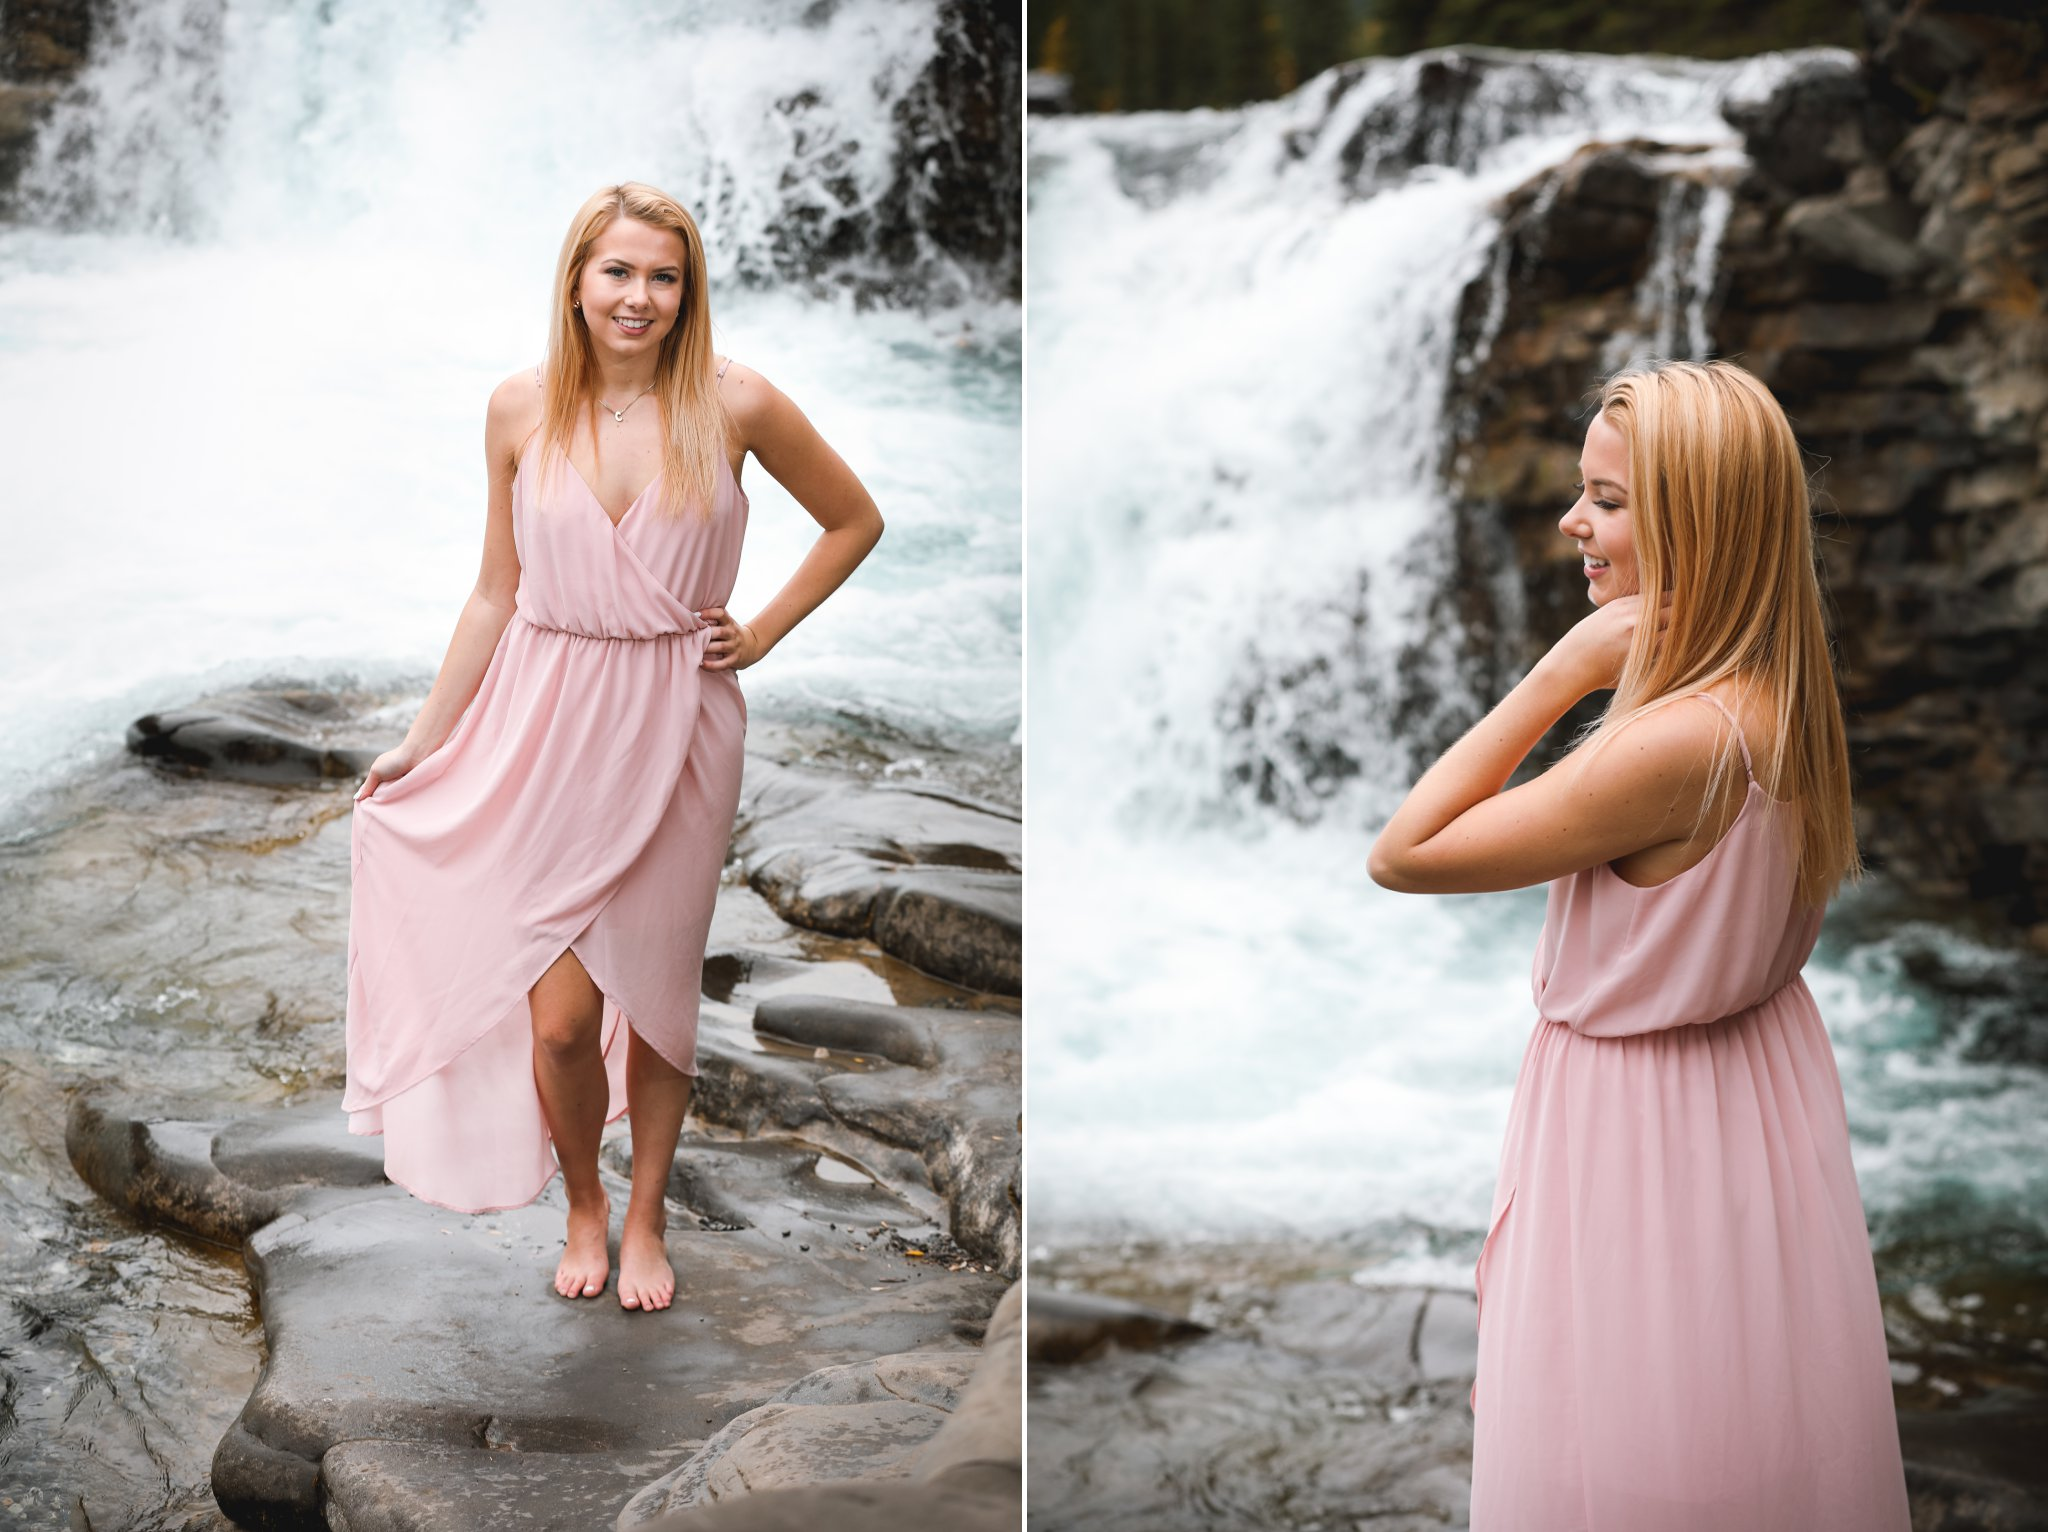 AshleyDaphnePhotography Calgary Photographer Wedding Family Senior Portraits Rocky Mountains Sheep River Falls Autumn Fall_0008.jpg